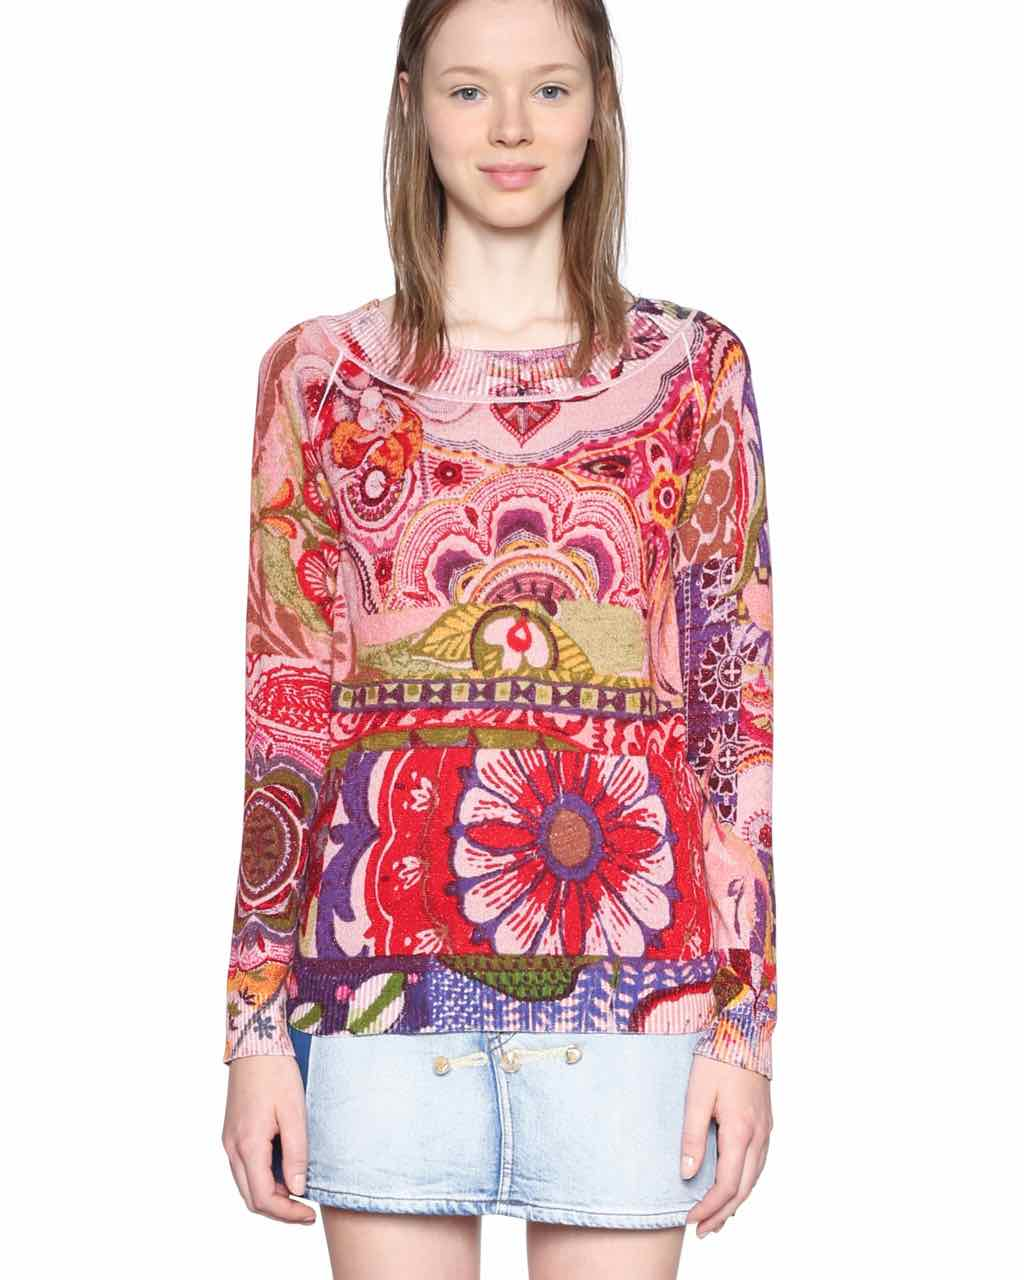 18SWJF70_3049 Desigual sweater Purpura (rose) Buy Online